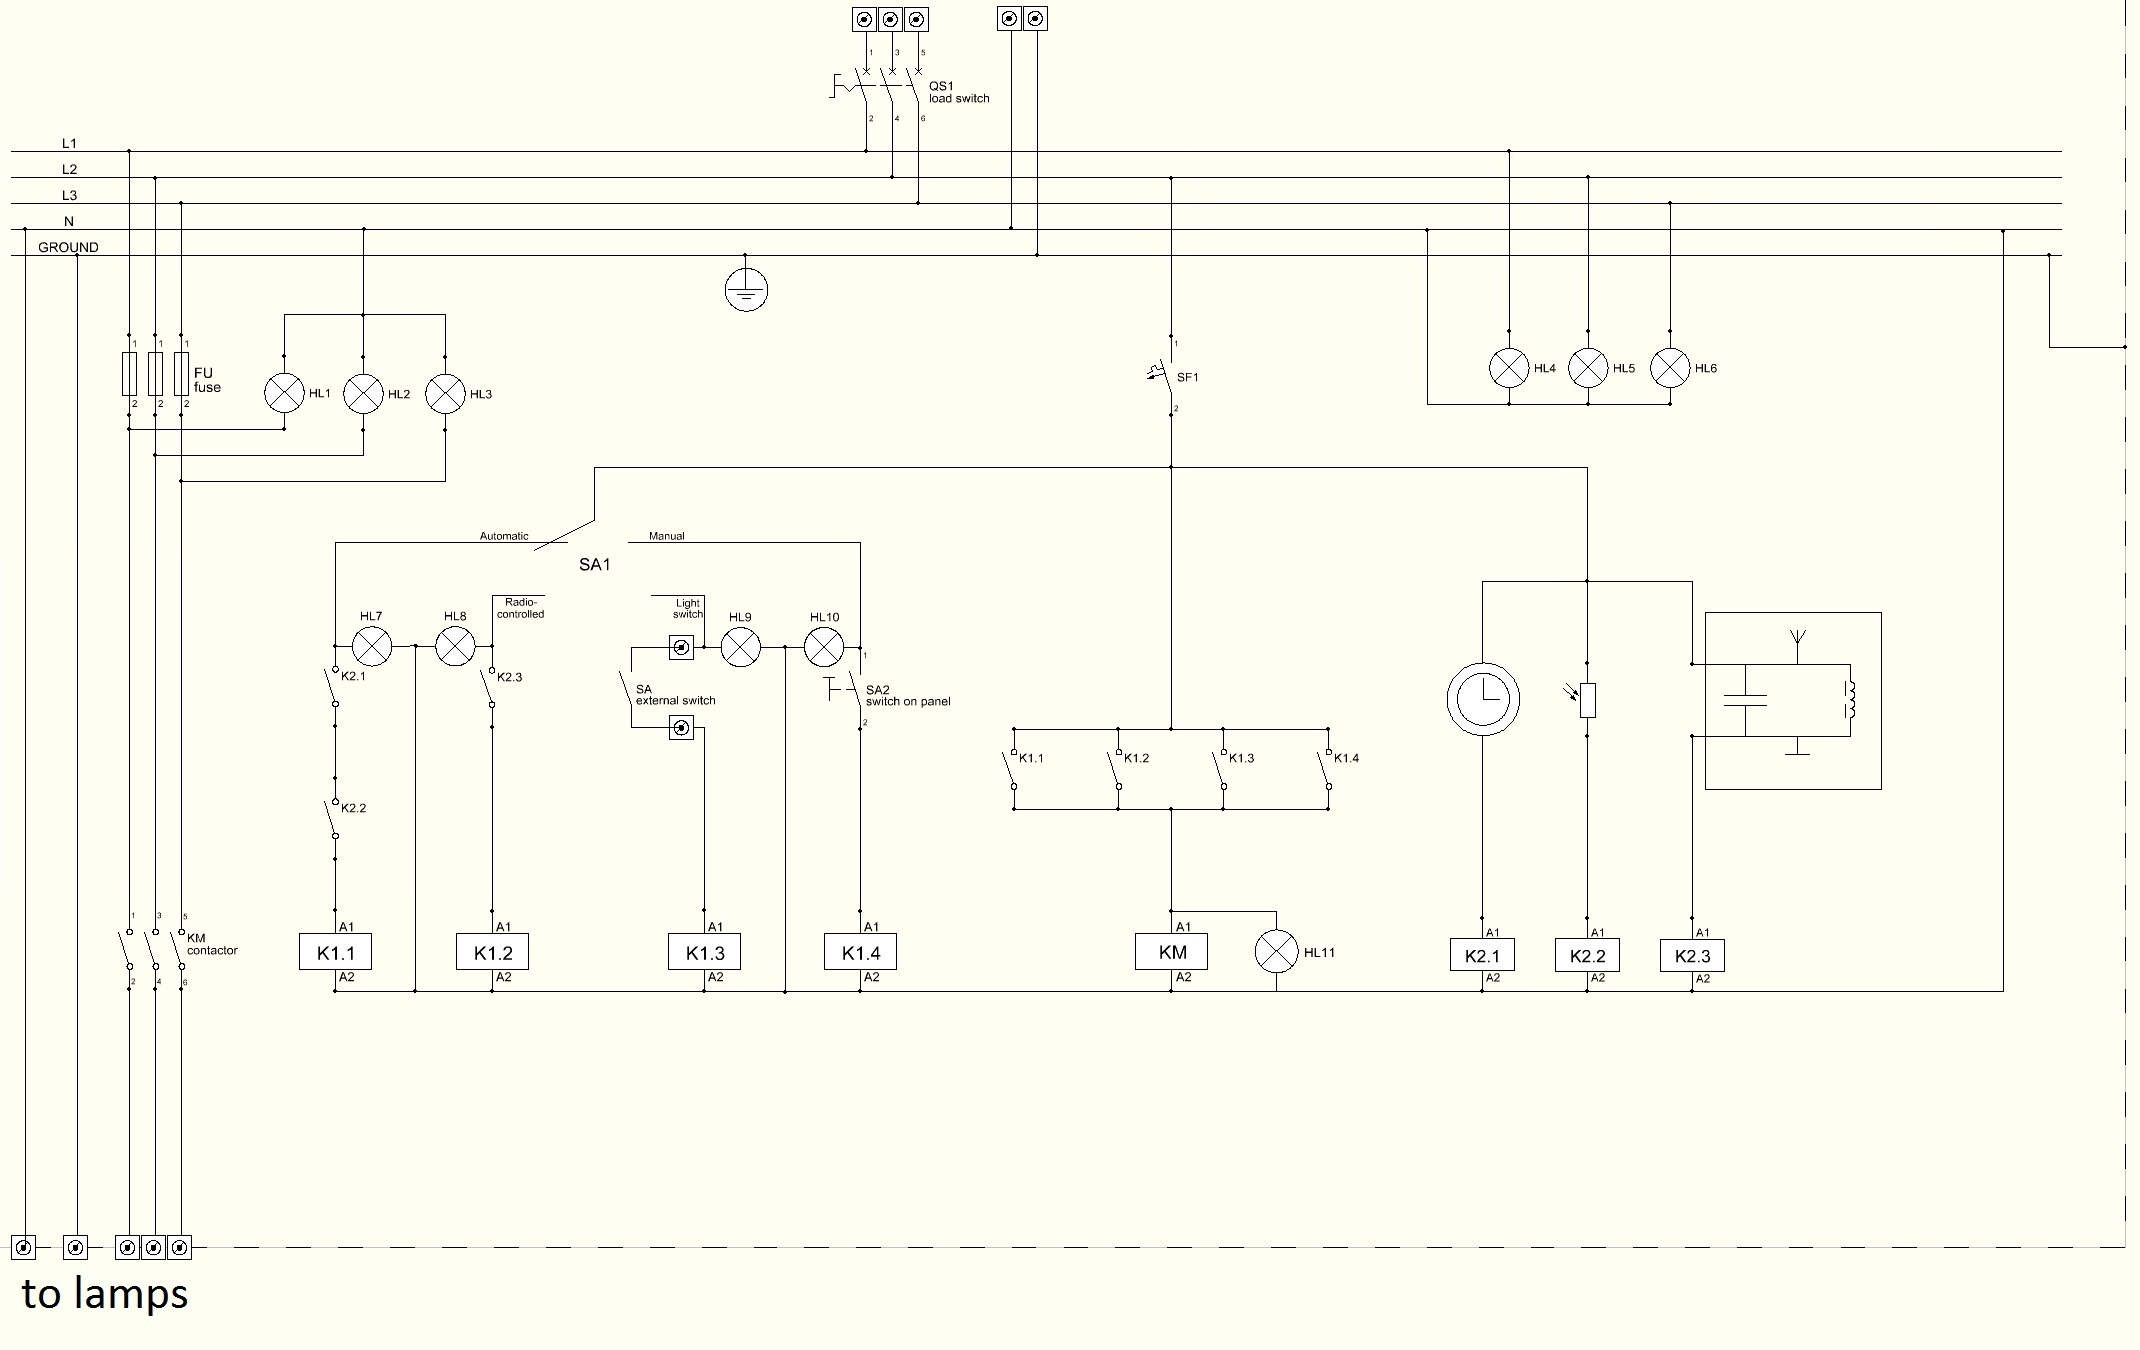 Filewiring Diagram Of Lighting Control Panel For Dummies I Need A Wiring